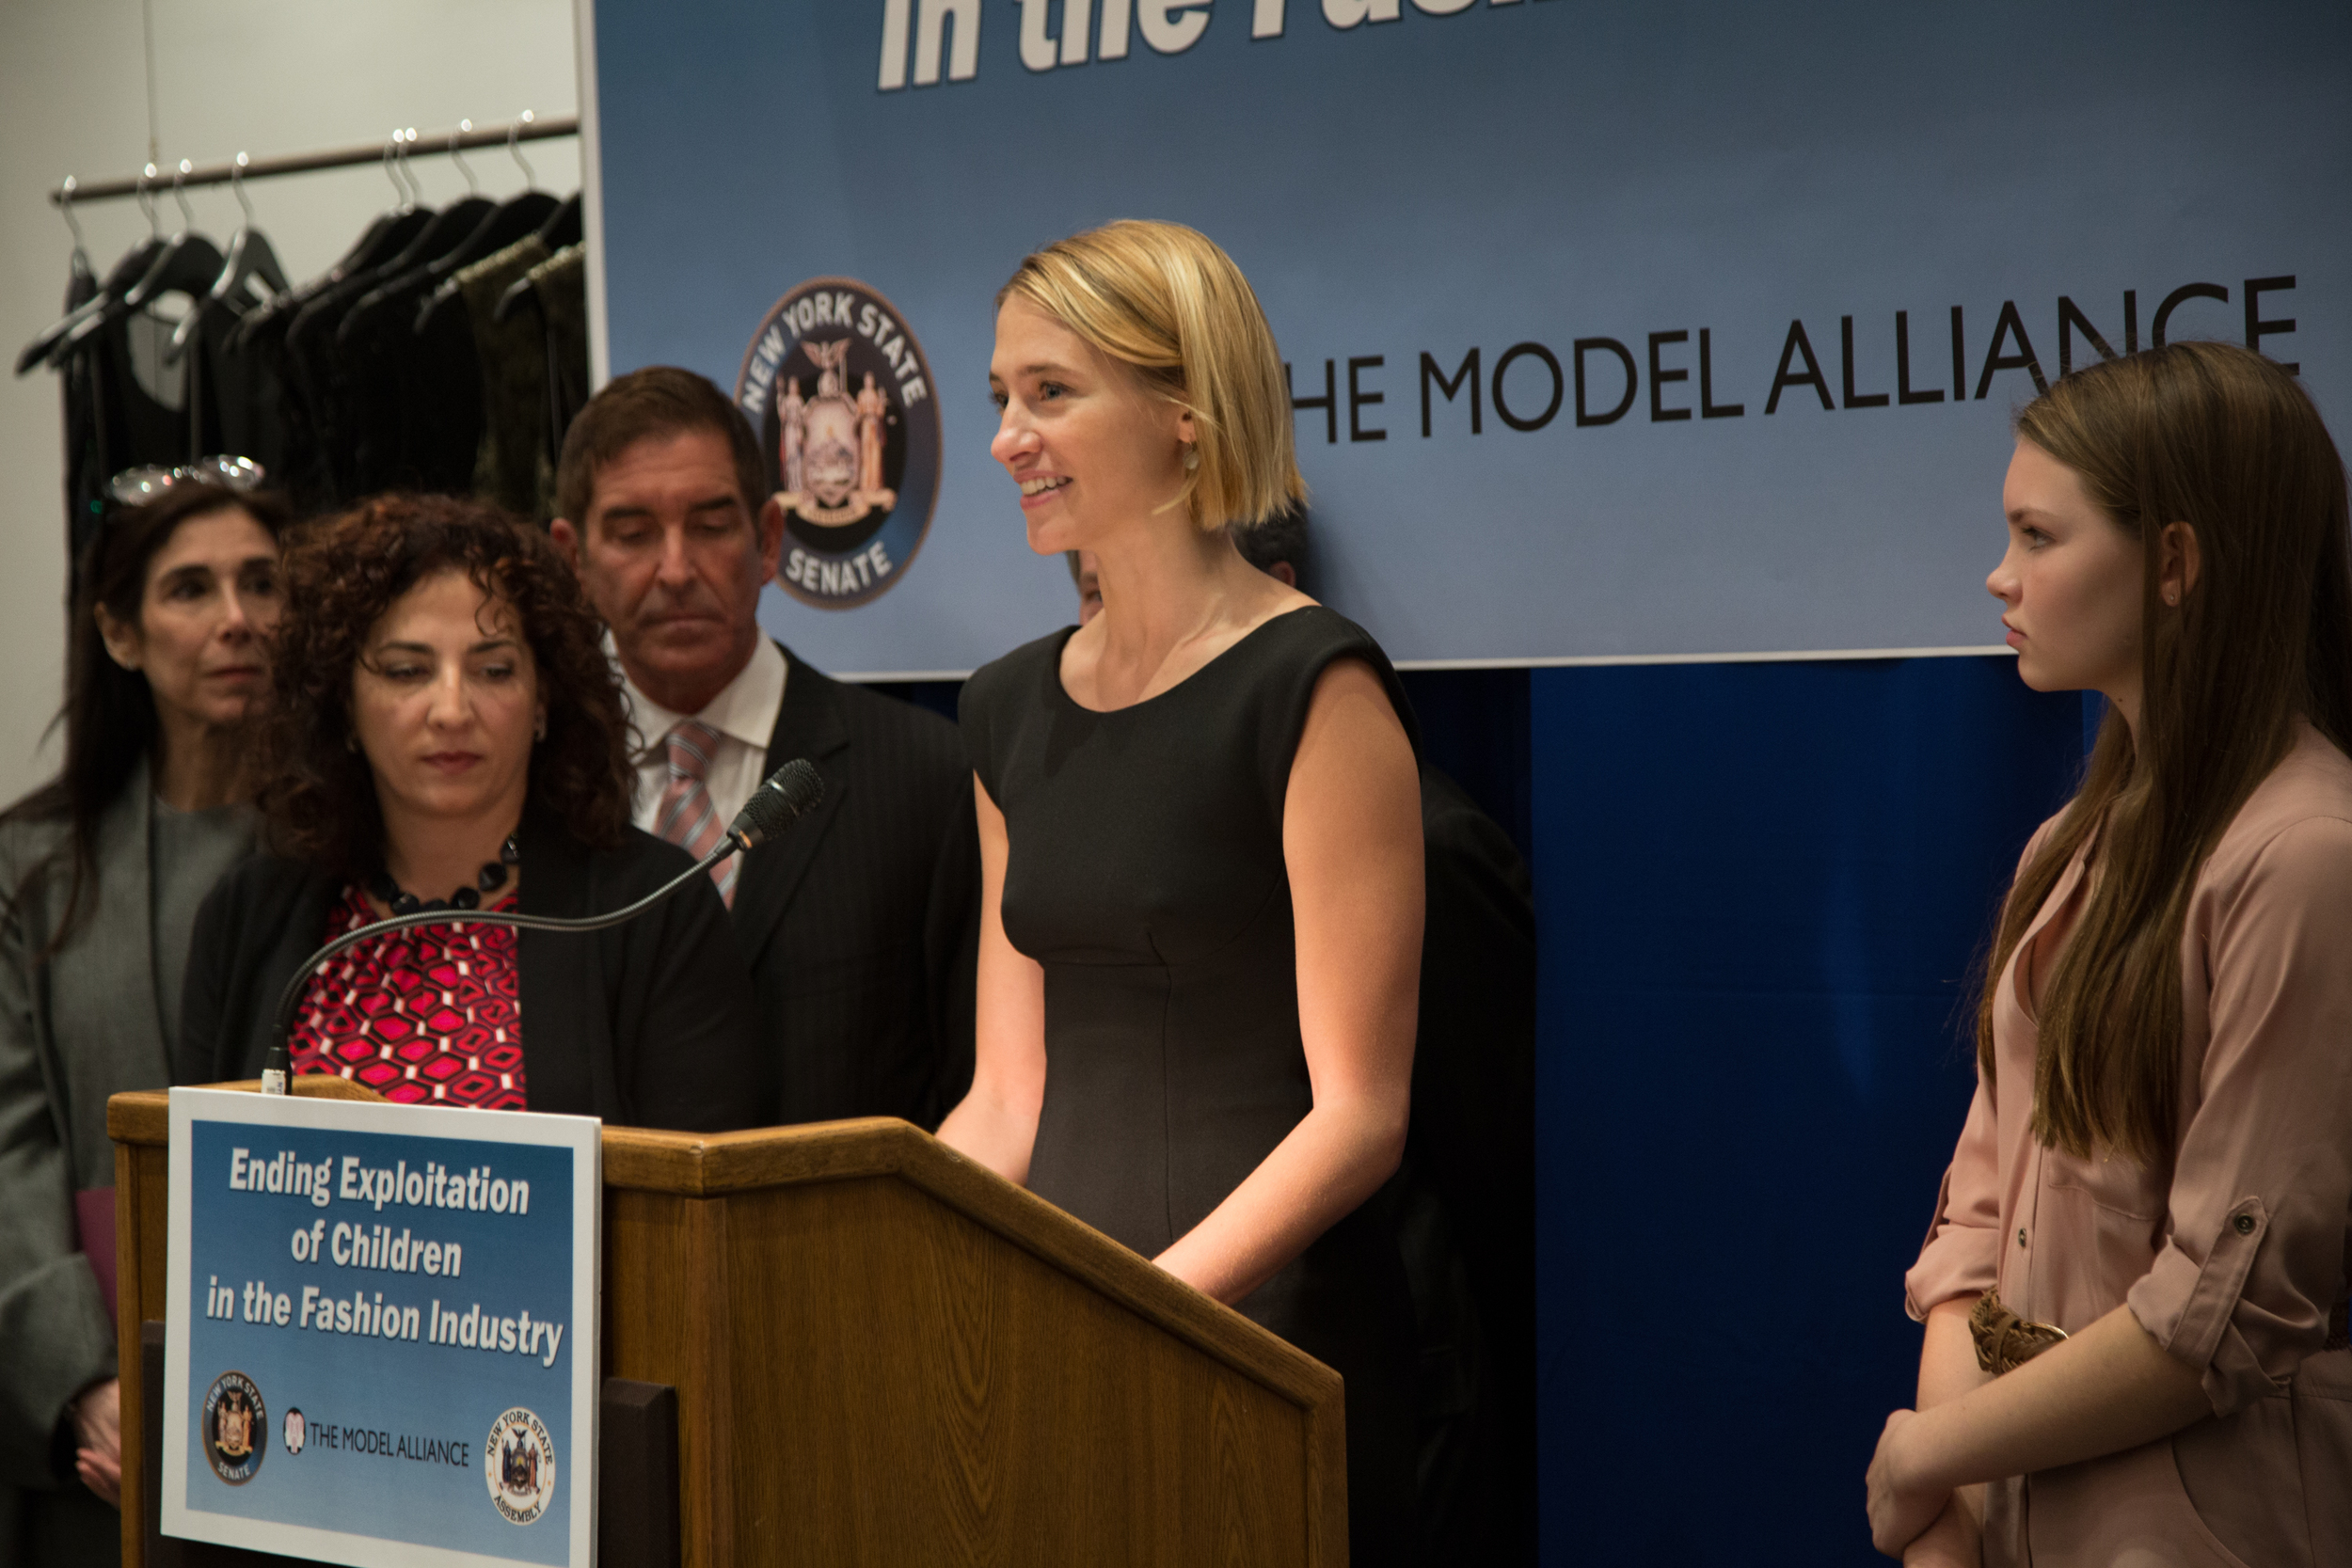 Executive Director of the Model Alliance, Sara Ziff